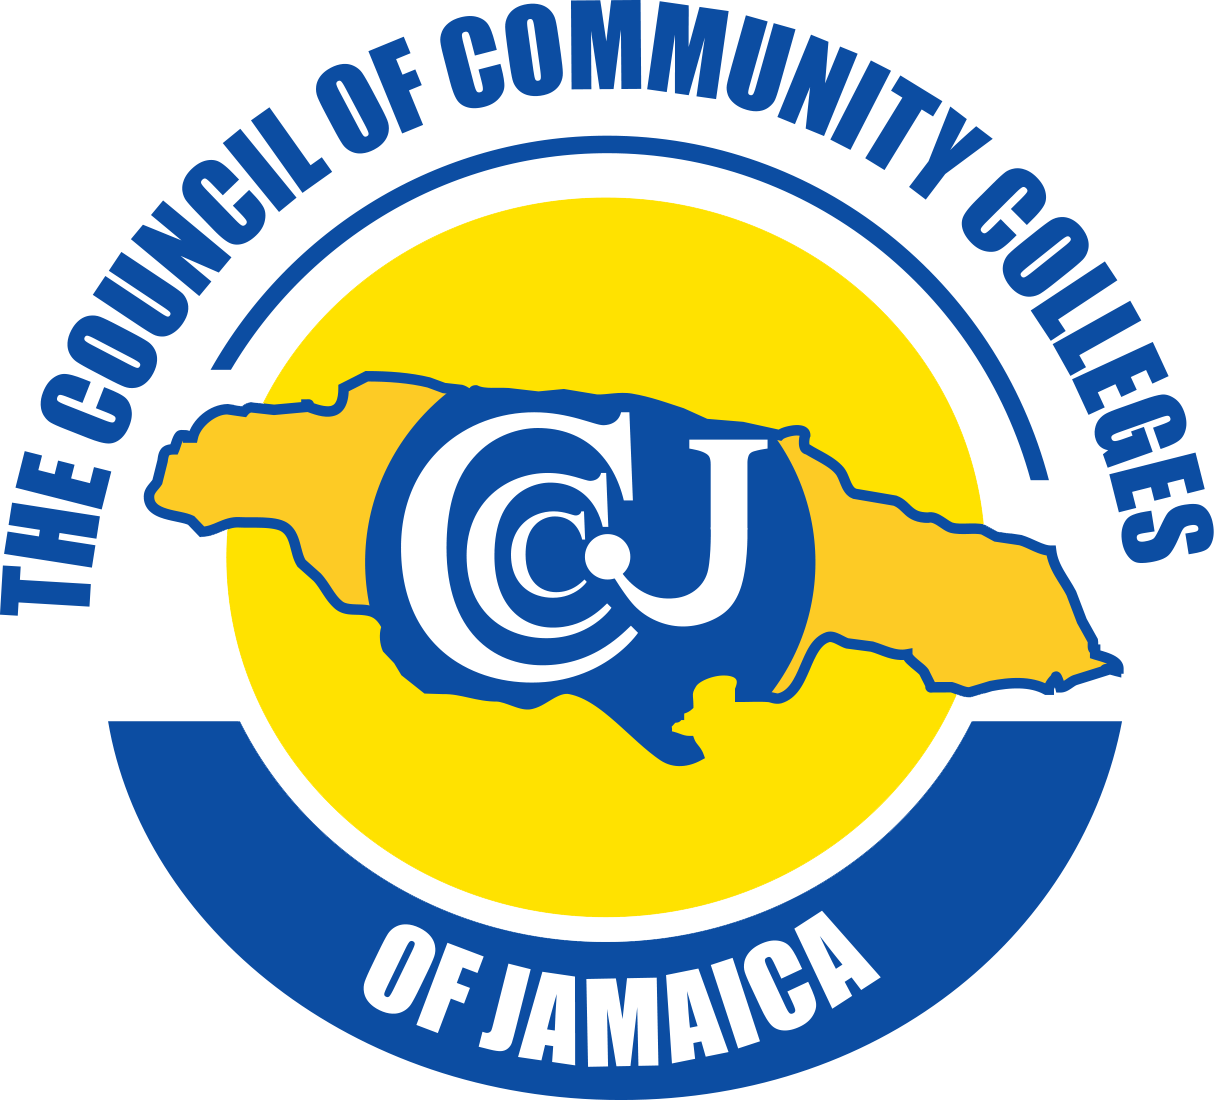 Council of Community Colleges of Jamaica